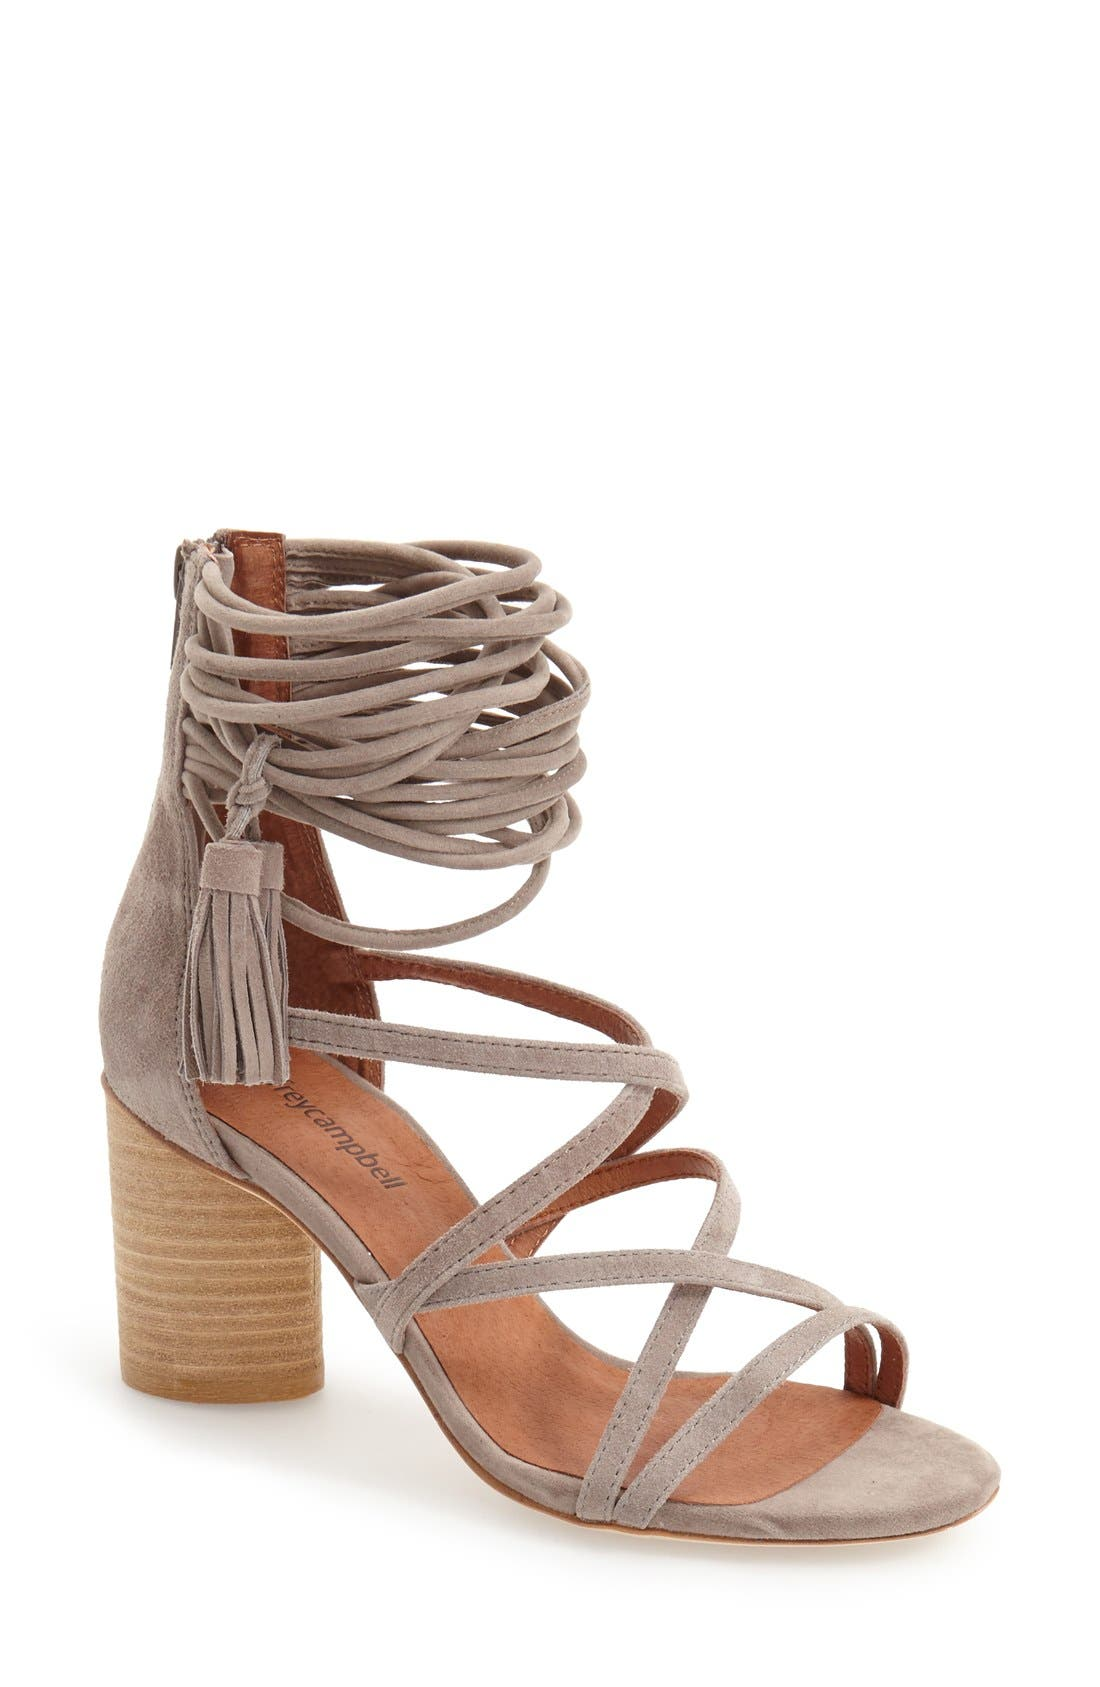 Alternate Image 1 Selected - Jeffrey Campbell 'Despina' Strappy Sandal (Women)